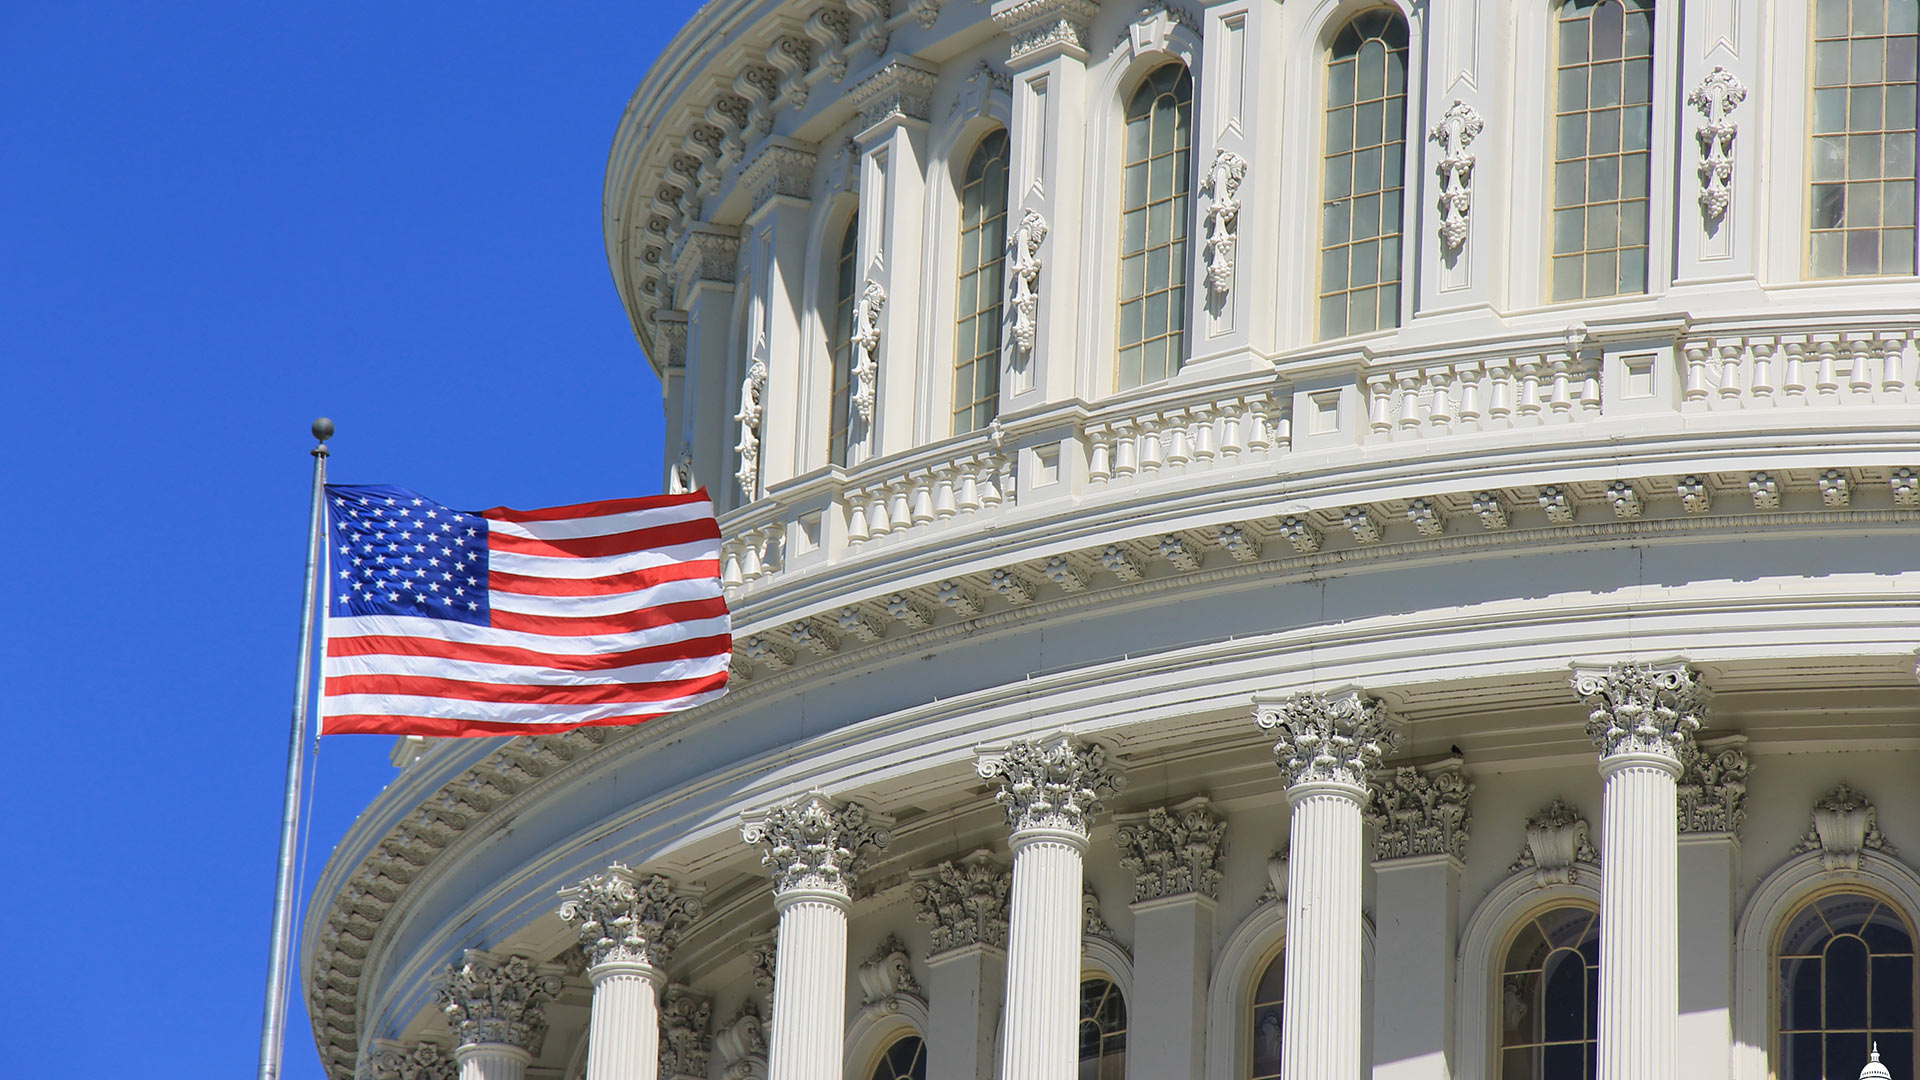 A flag flies by the dome of the U.S. Capitol.